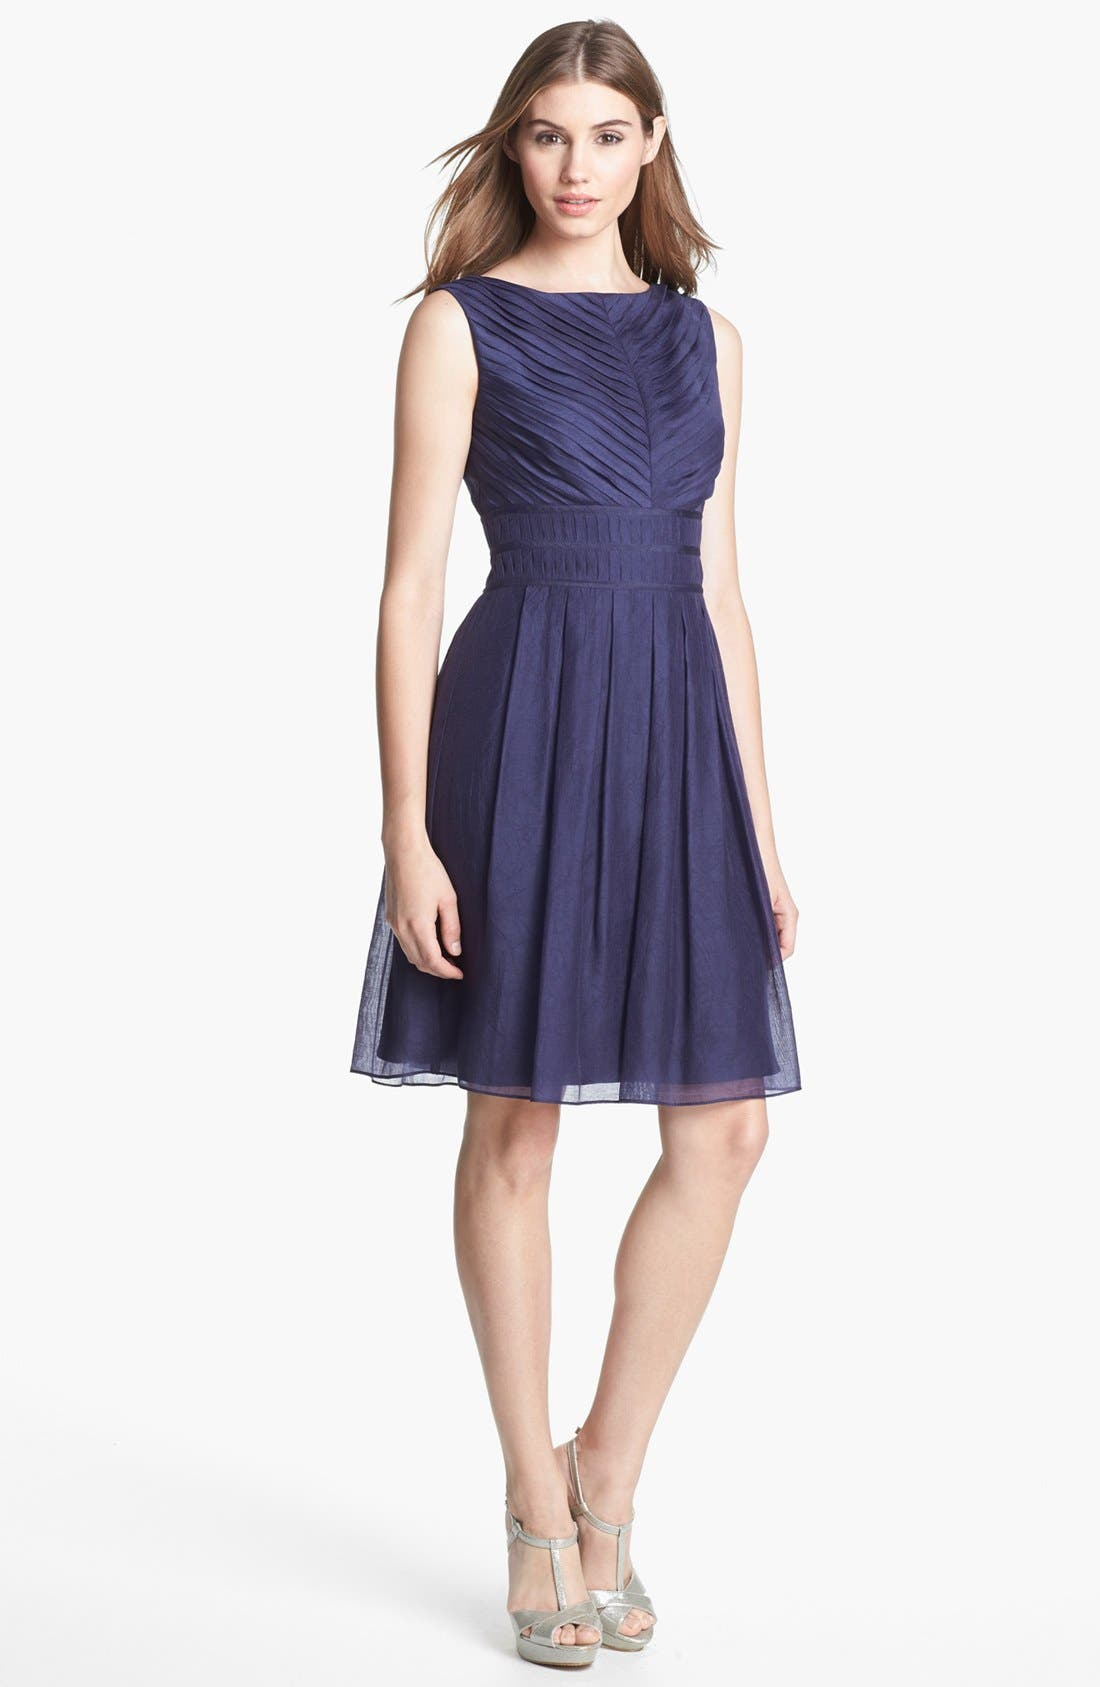 Alternate Image 1 Selected - Ivy & Blu Pleat Fit & Flare Dress (Online Only)